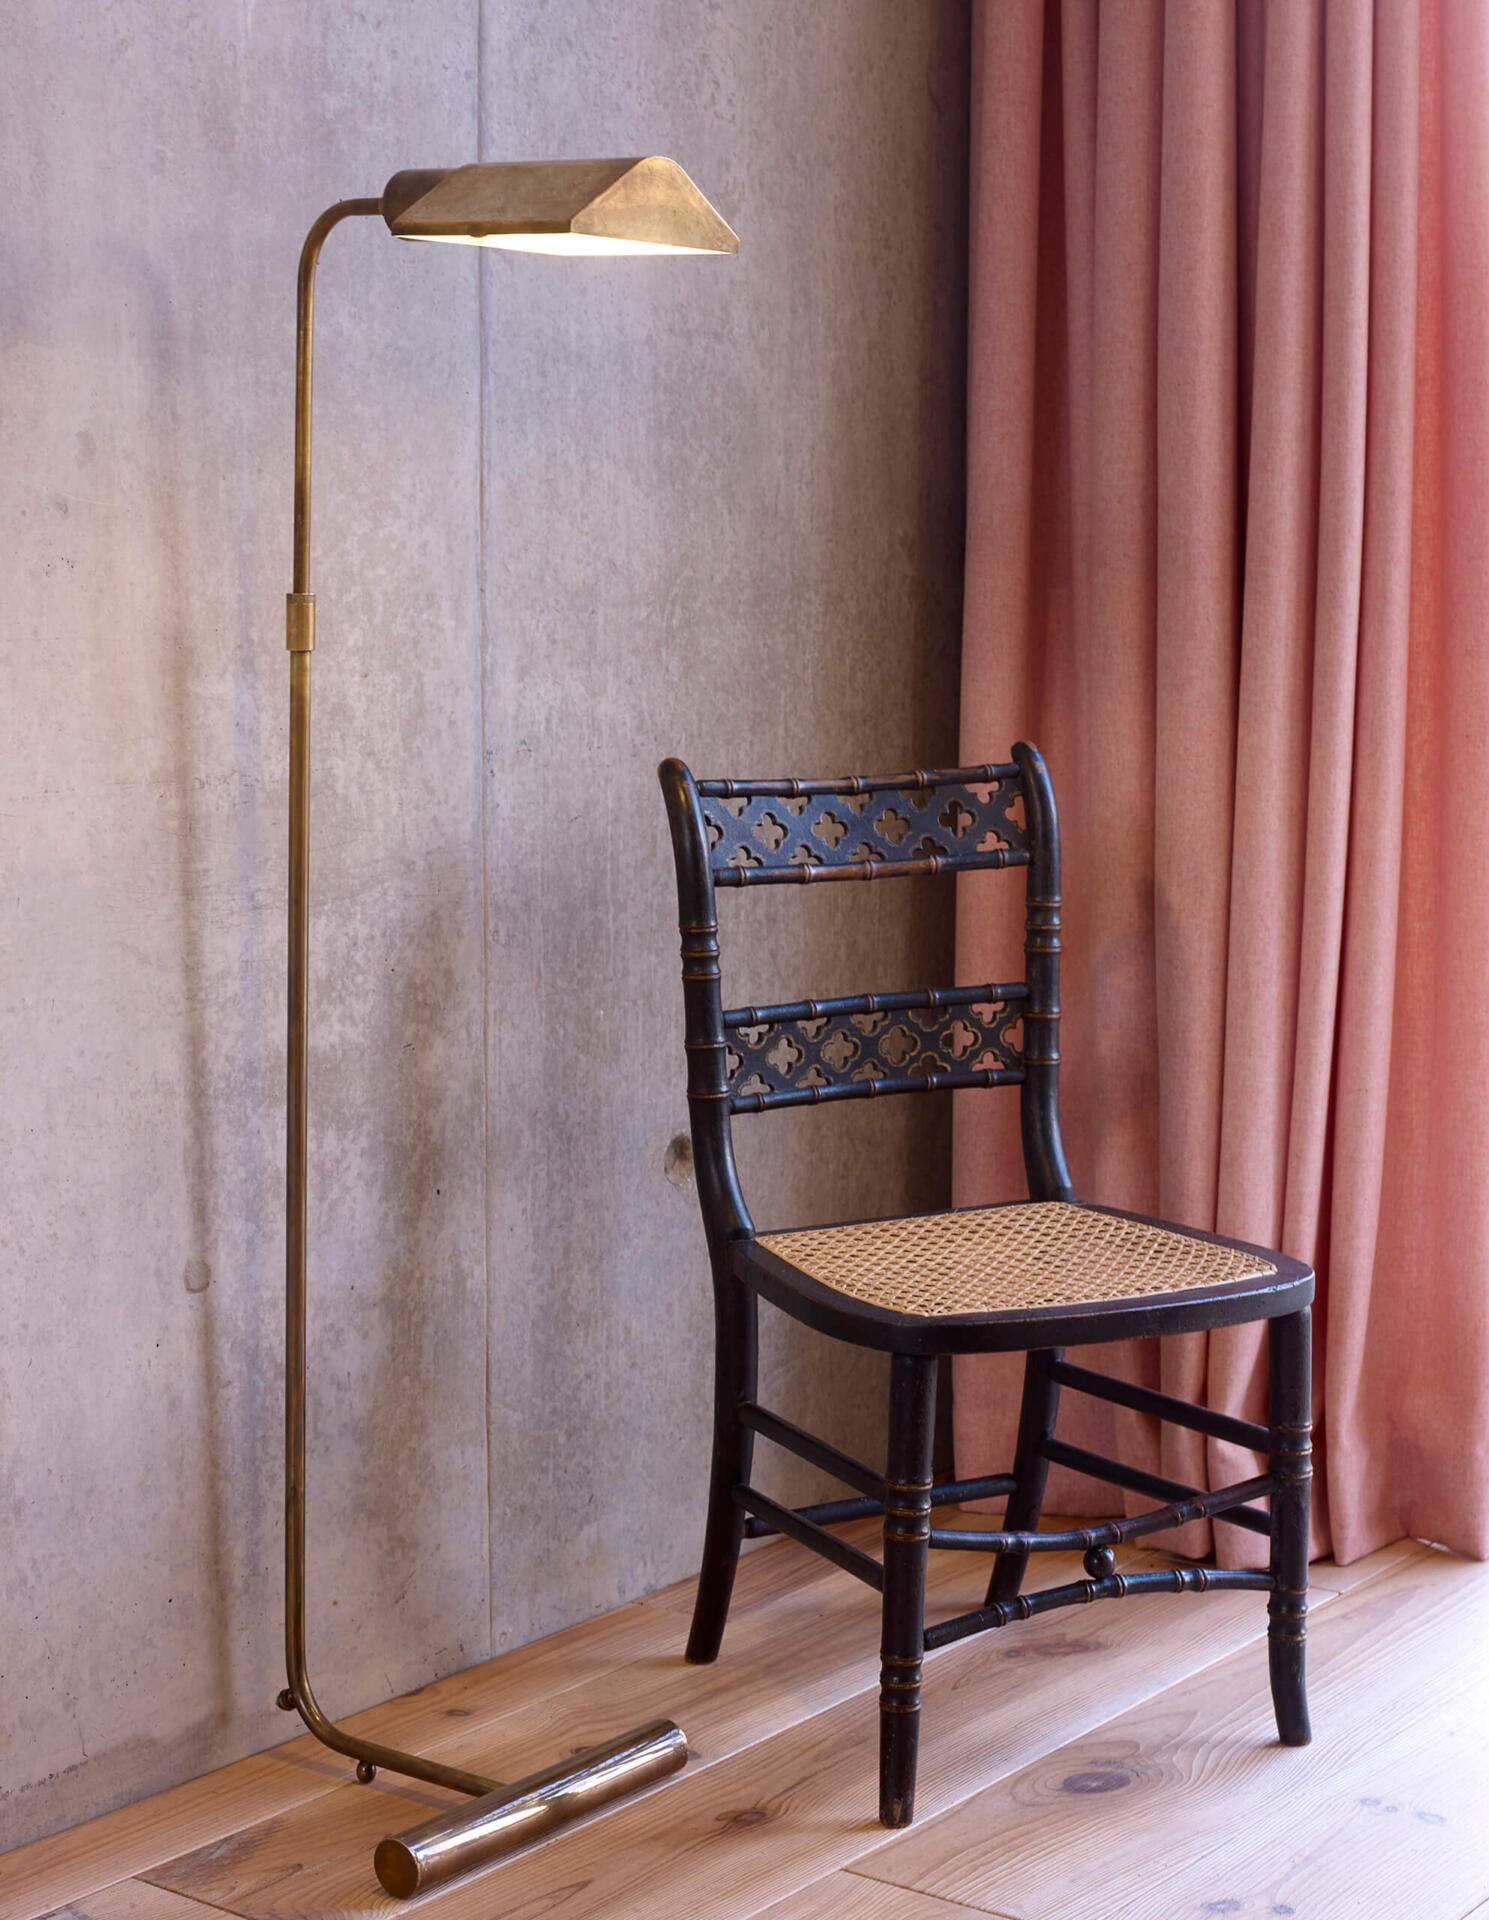 The Mallet Floor Light pictured in an Antique Brass finish